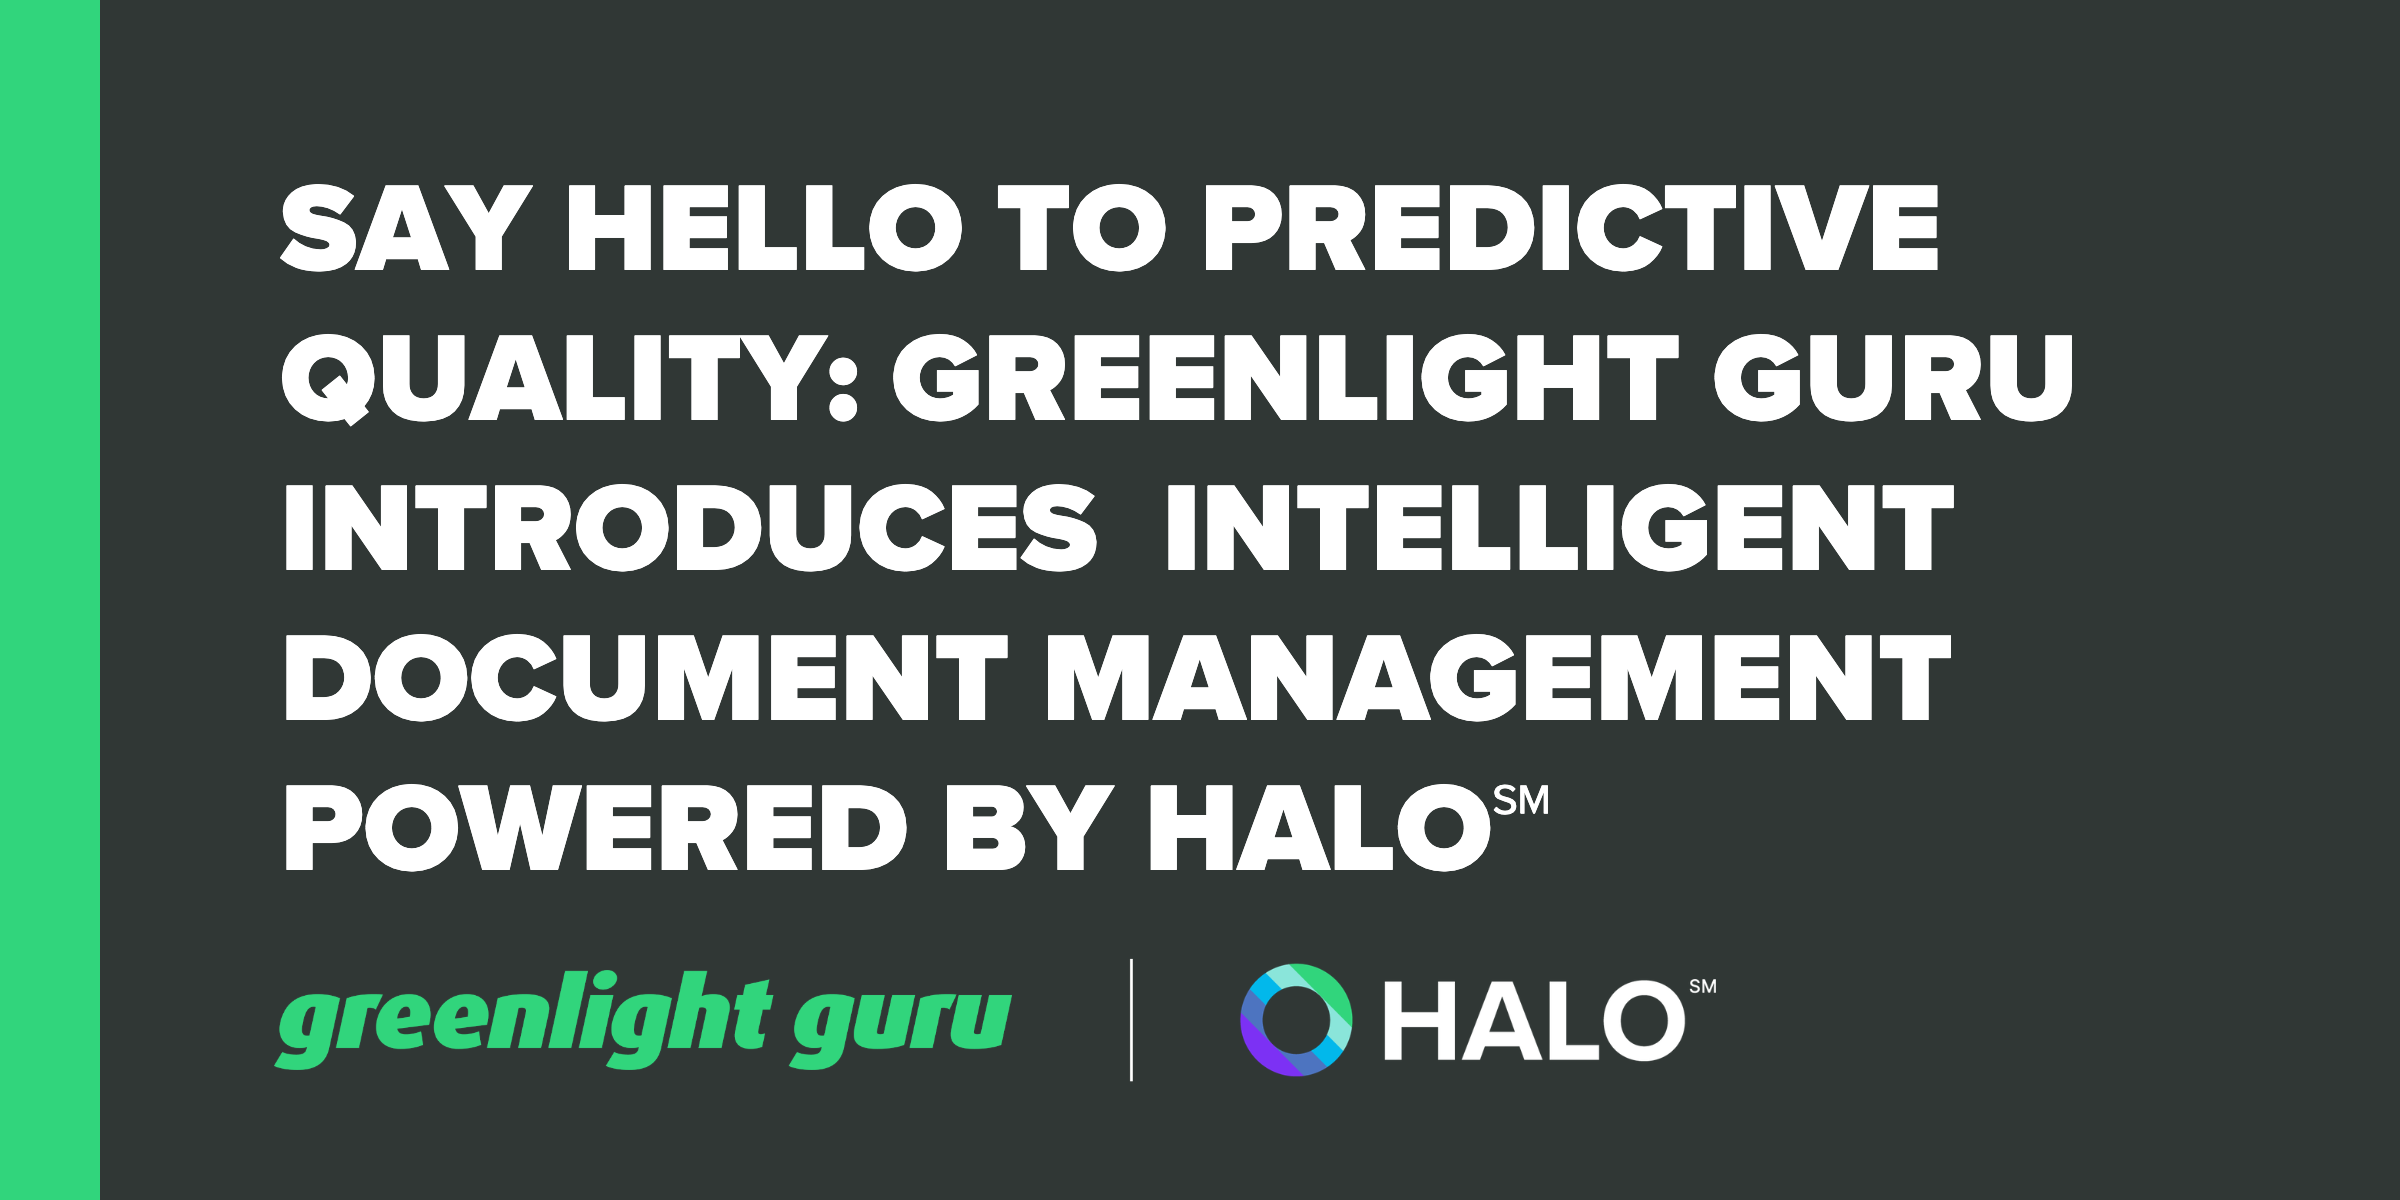 Say Hello to Predictive Quality: Greenlight Guru Introduces Intelligent Document Management powered by Halo℠ - Featured Image